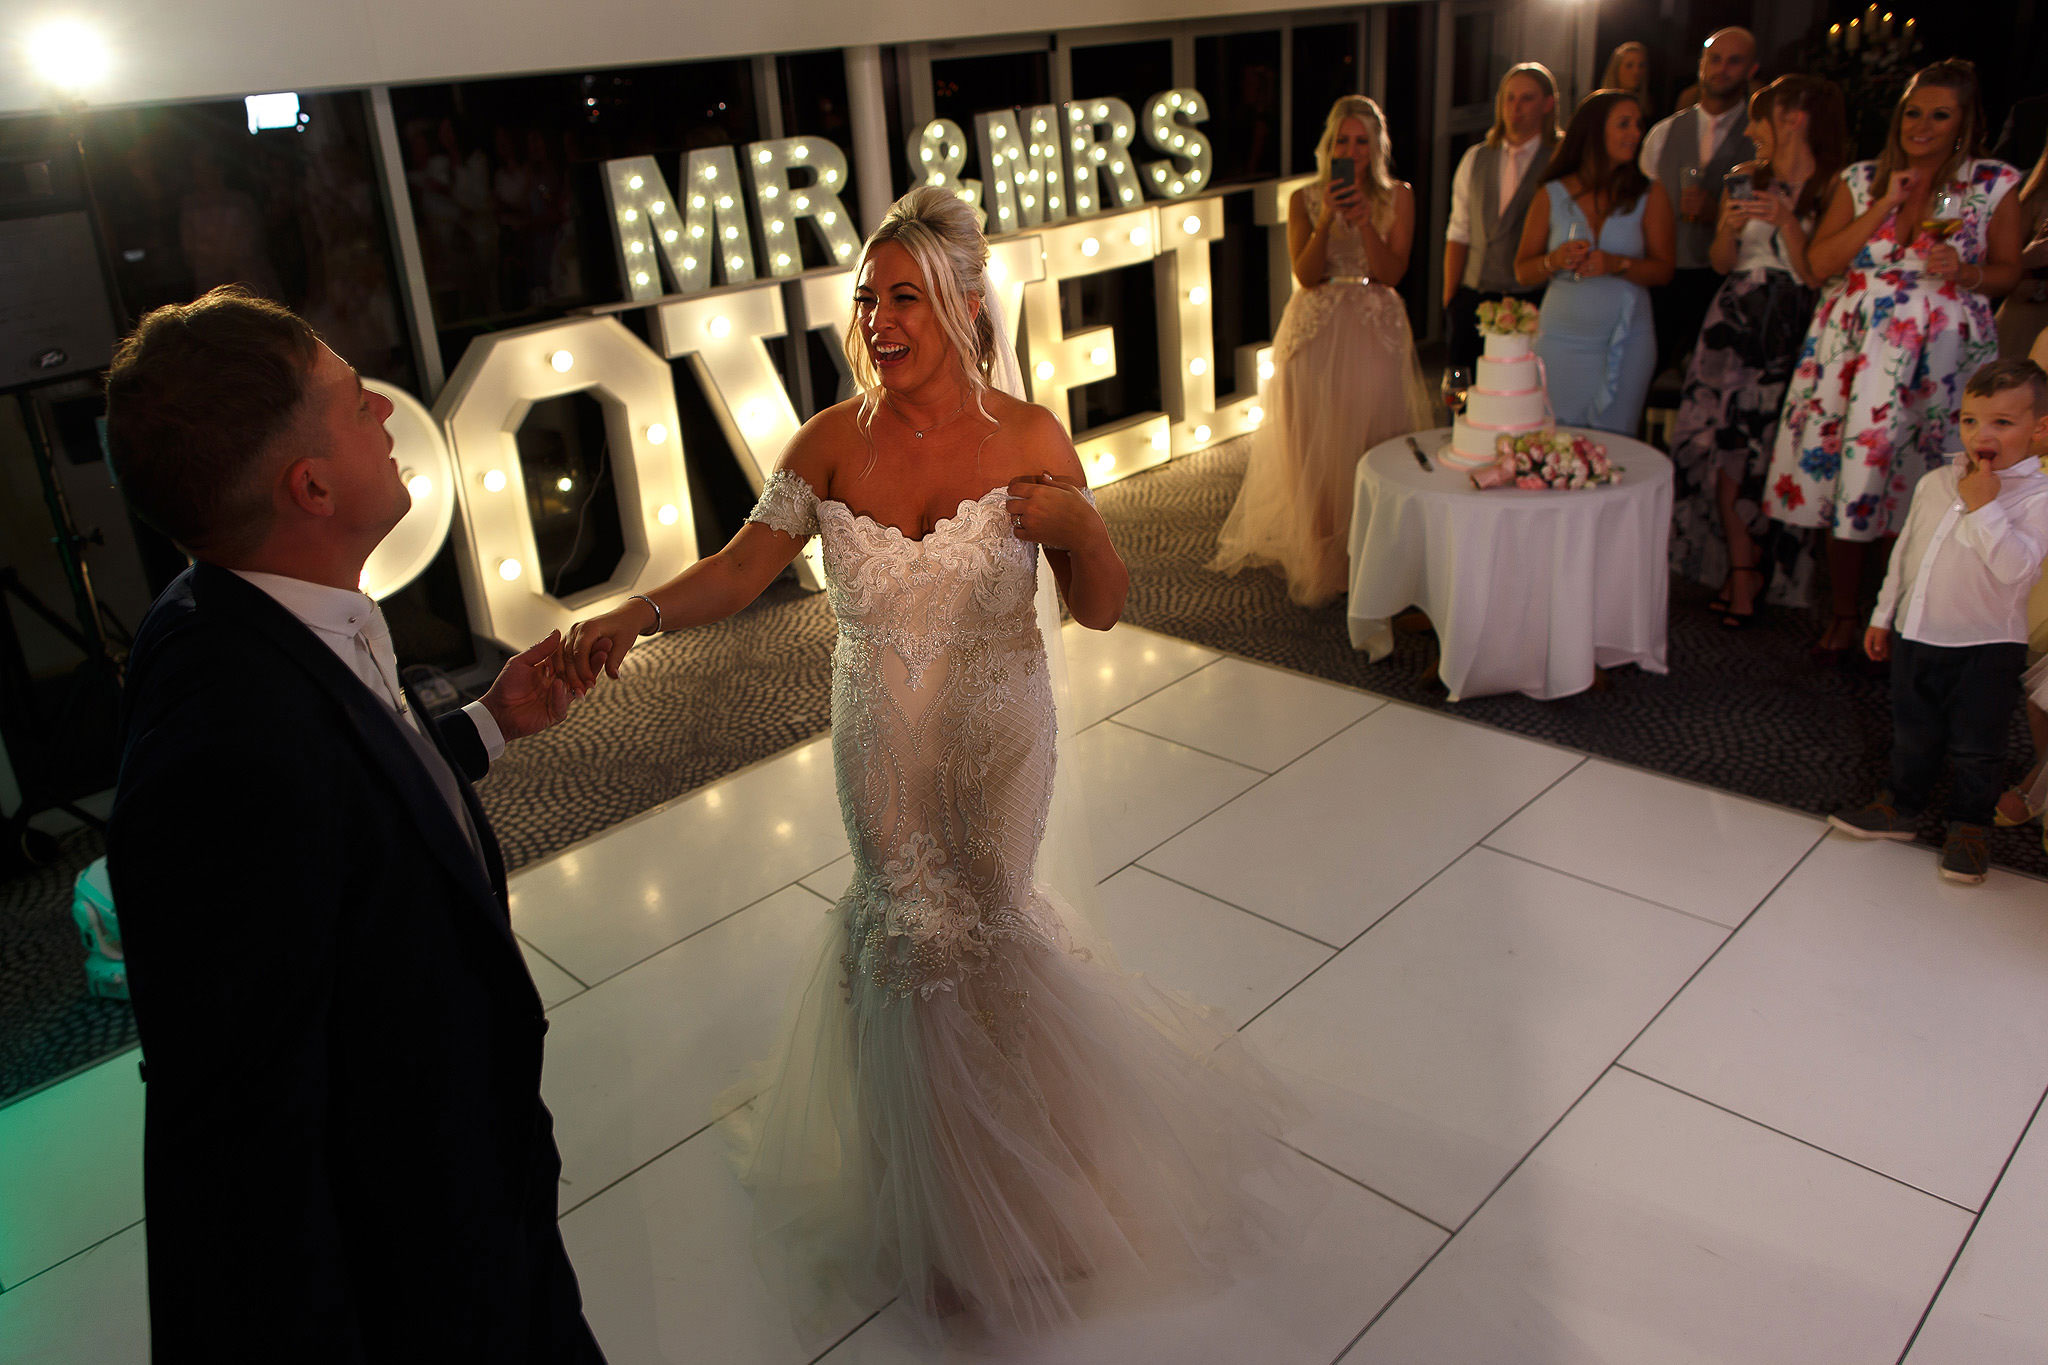 Bride and groom on the dance floor with light up letters behind them at Hurlston Hall wedding